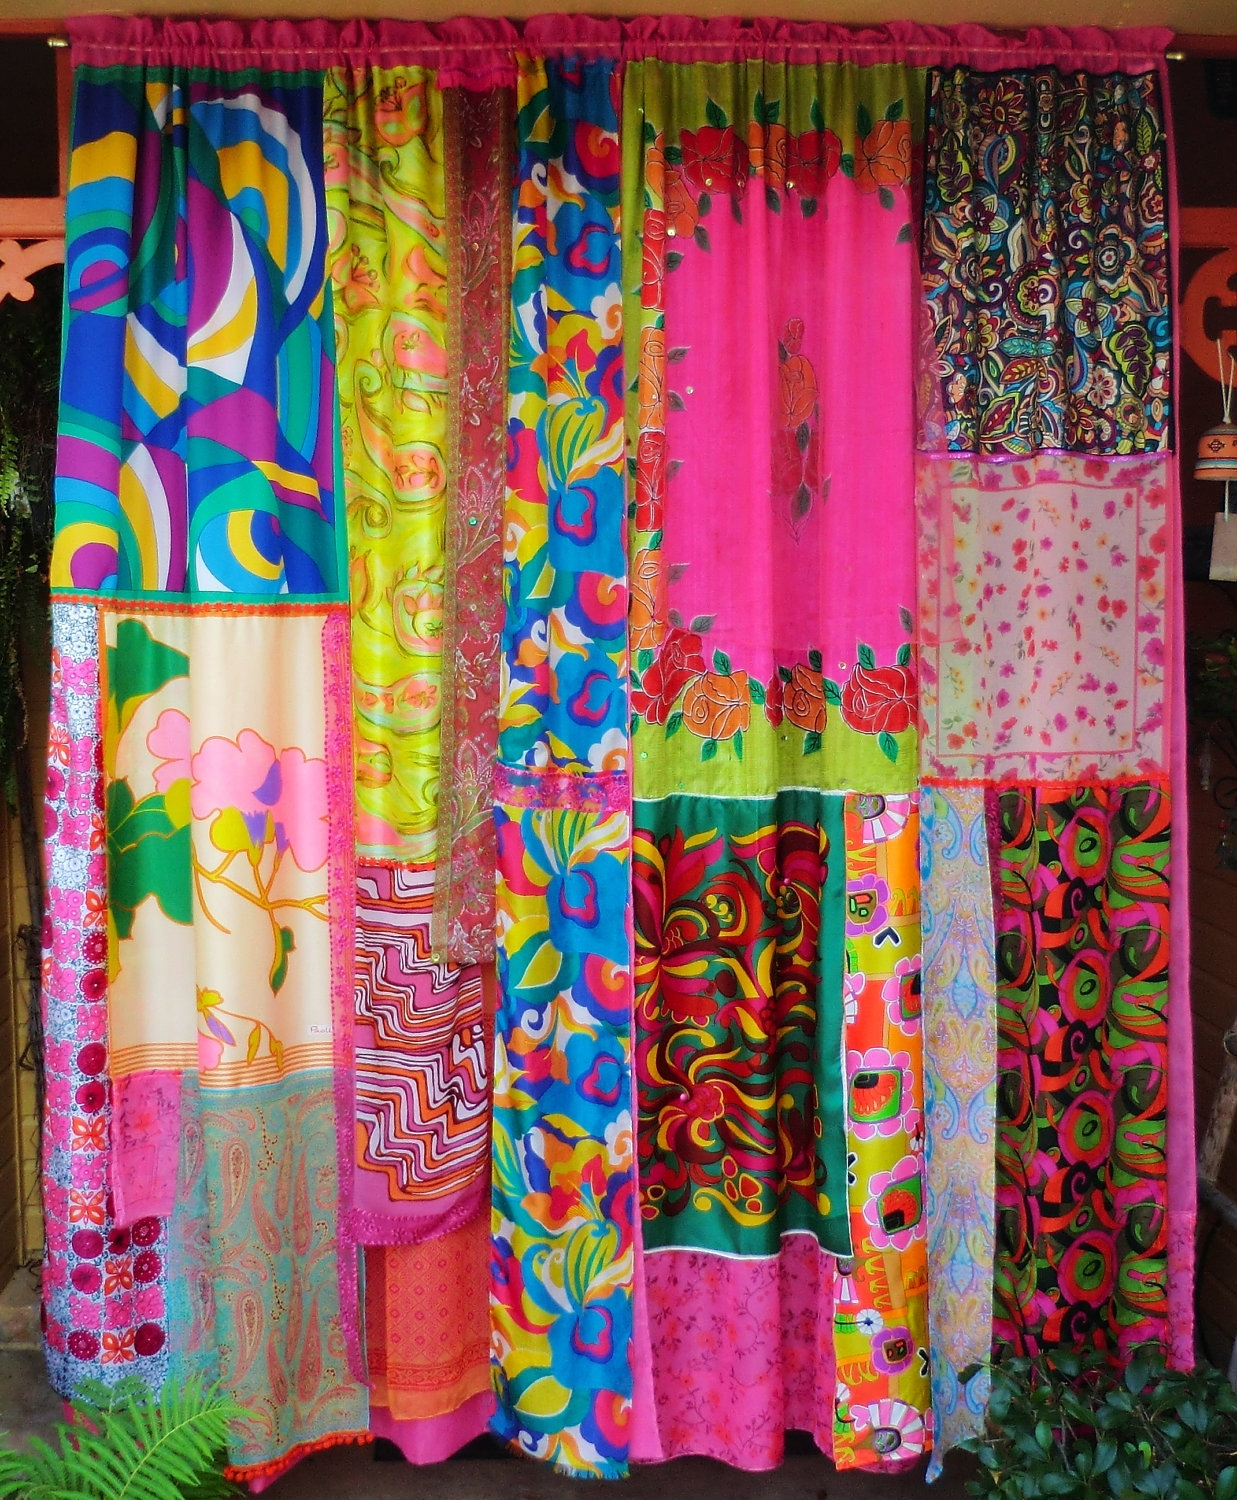 Mod Mod World Handmade Gypsy Curtains Hippie Global Vintage With Bohemian Curtains (View 5 of 15)